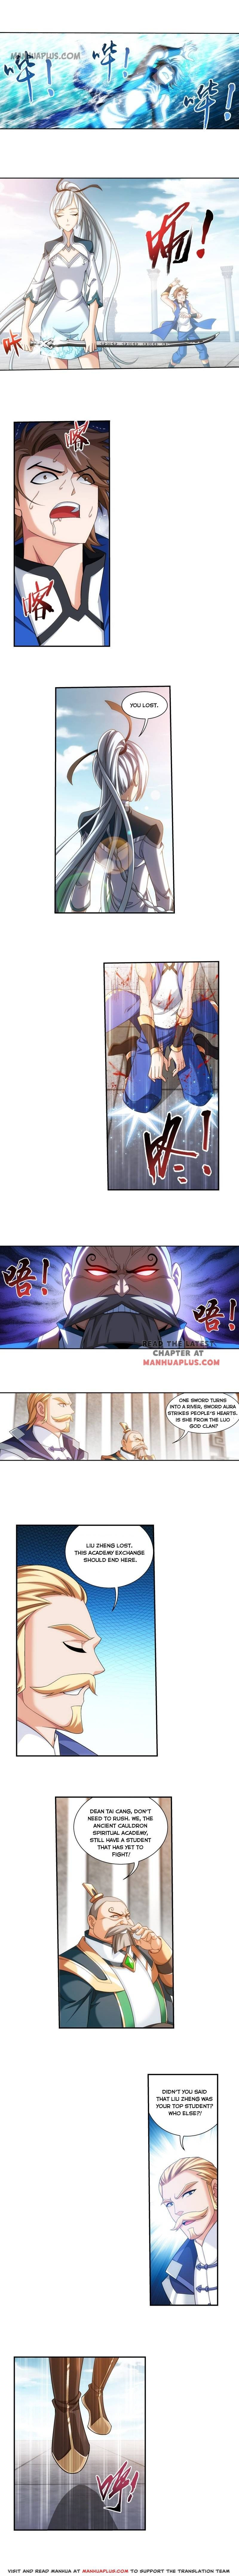 The Great Ruler ch.181